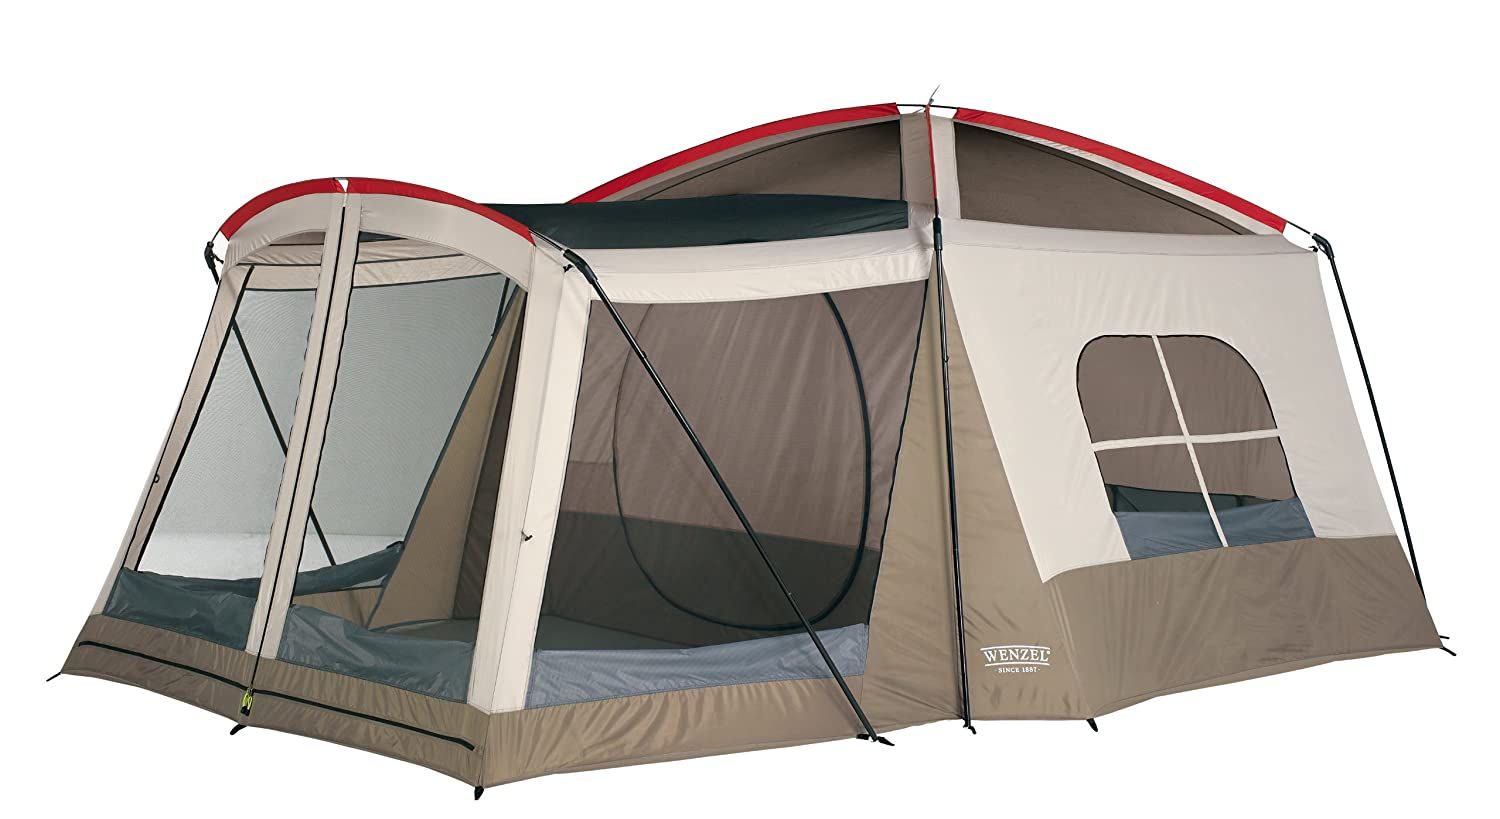 Top 10 Best Family Camping Tents For Sale In 2017 Reviews